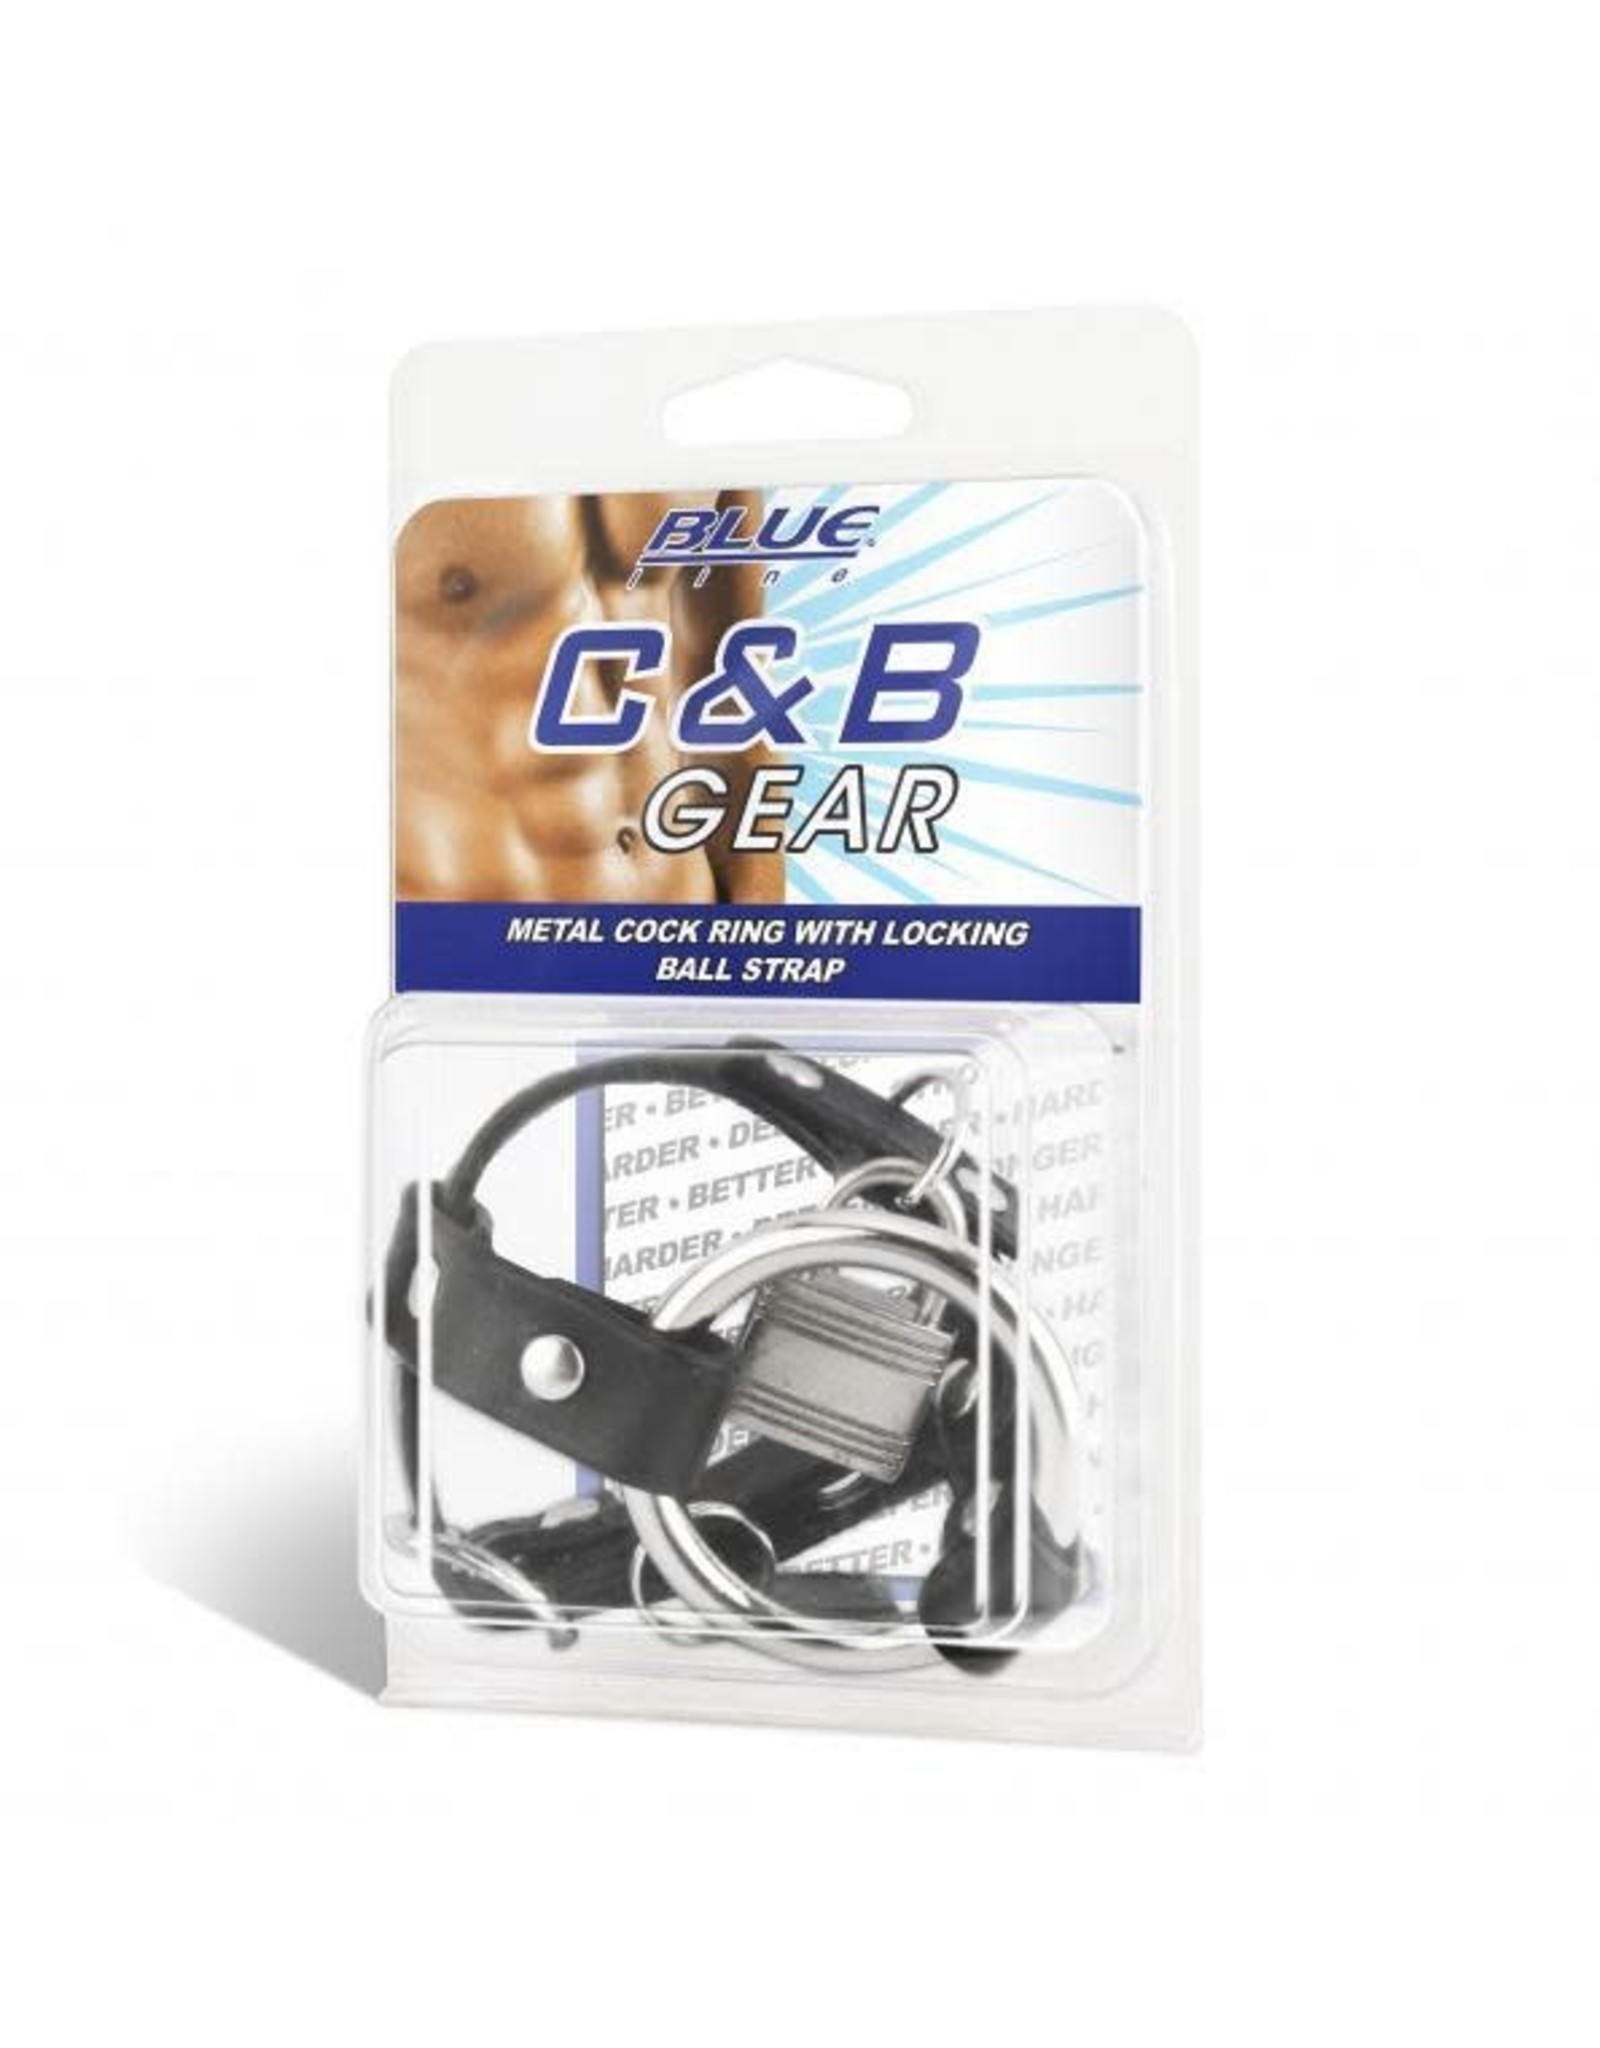 Blueline C & B Gear Blueline - Metal Cock Ring With Locking Ball Strap